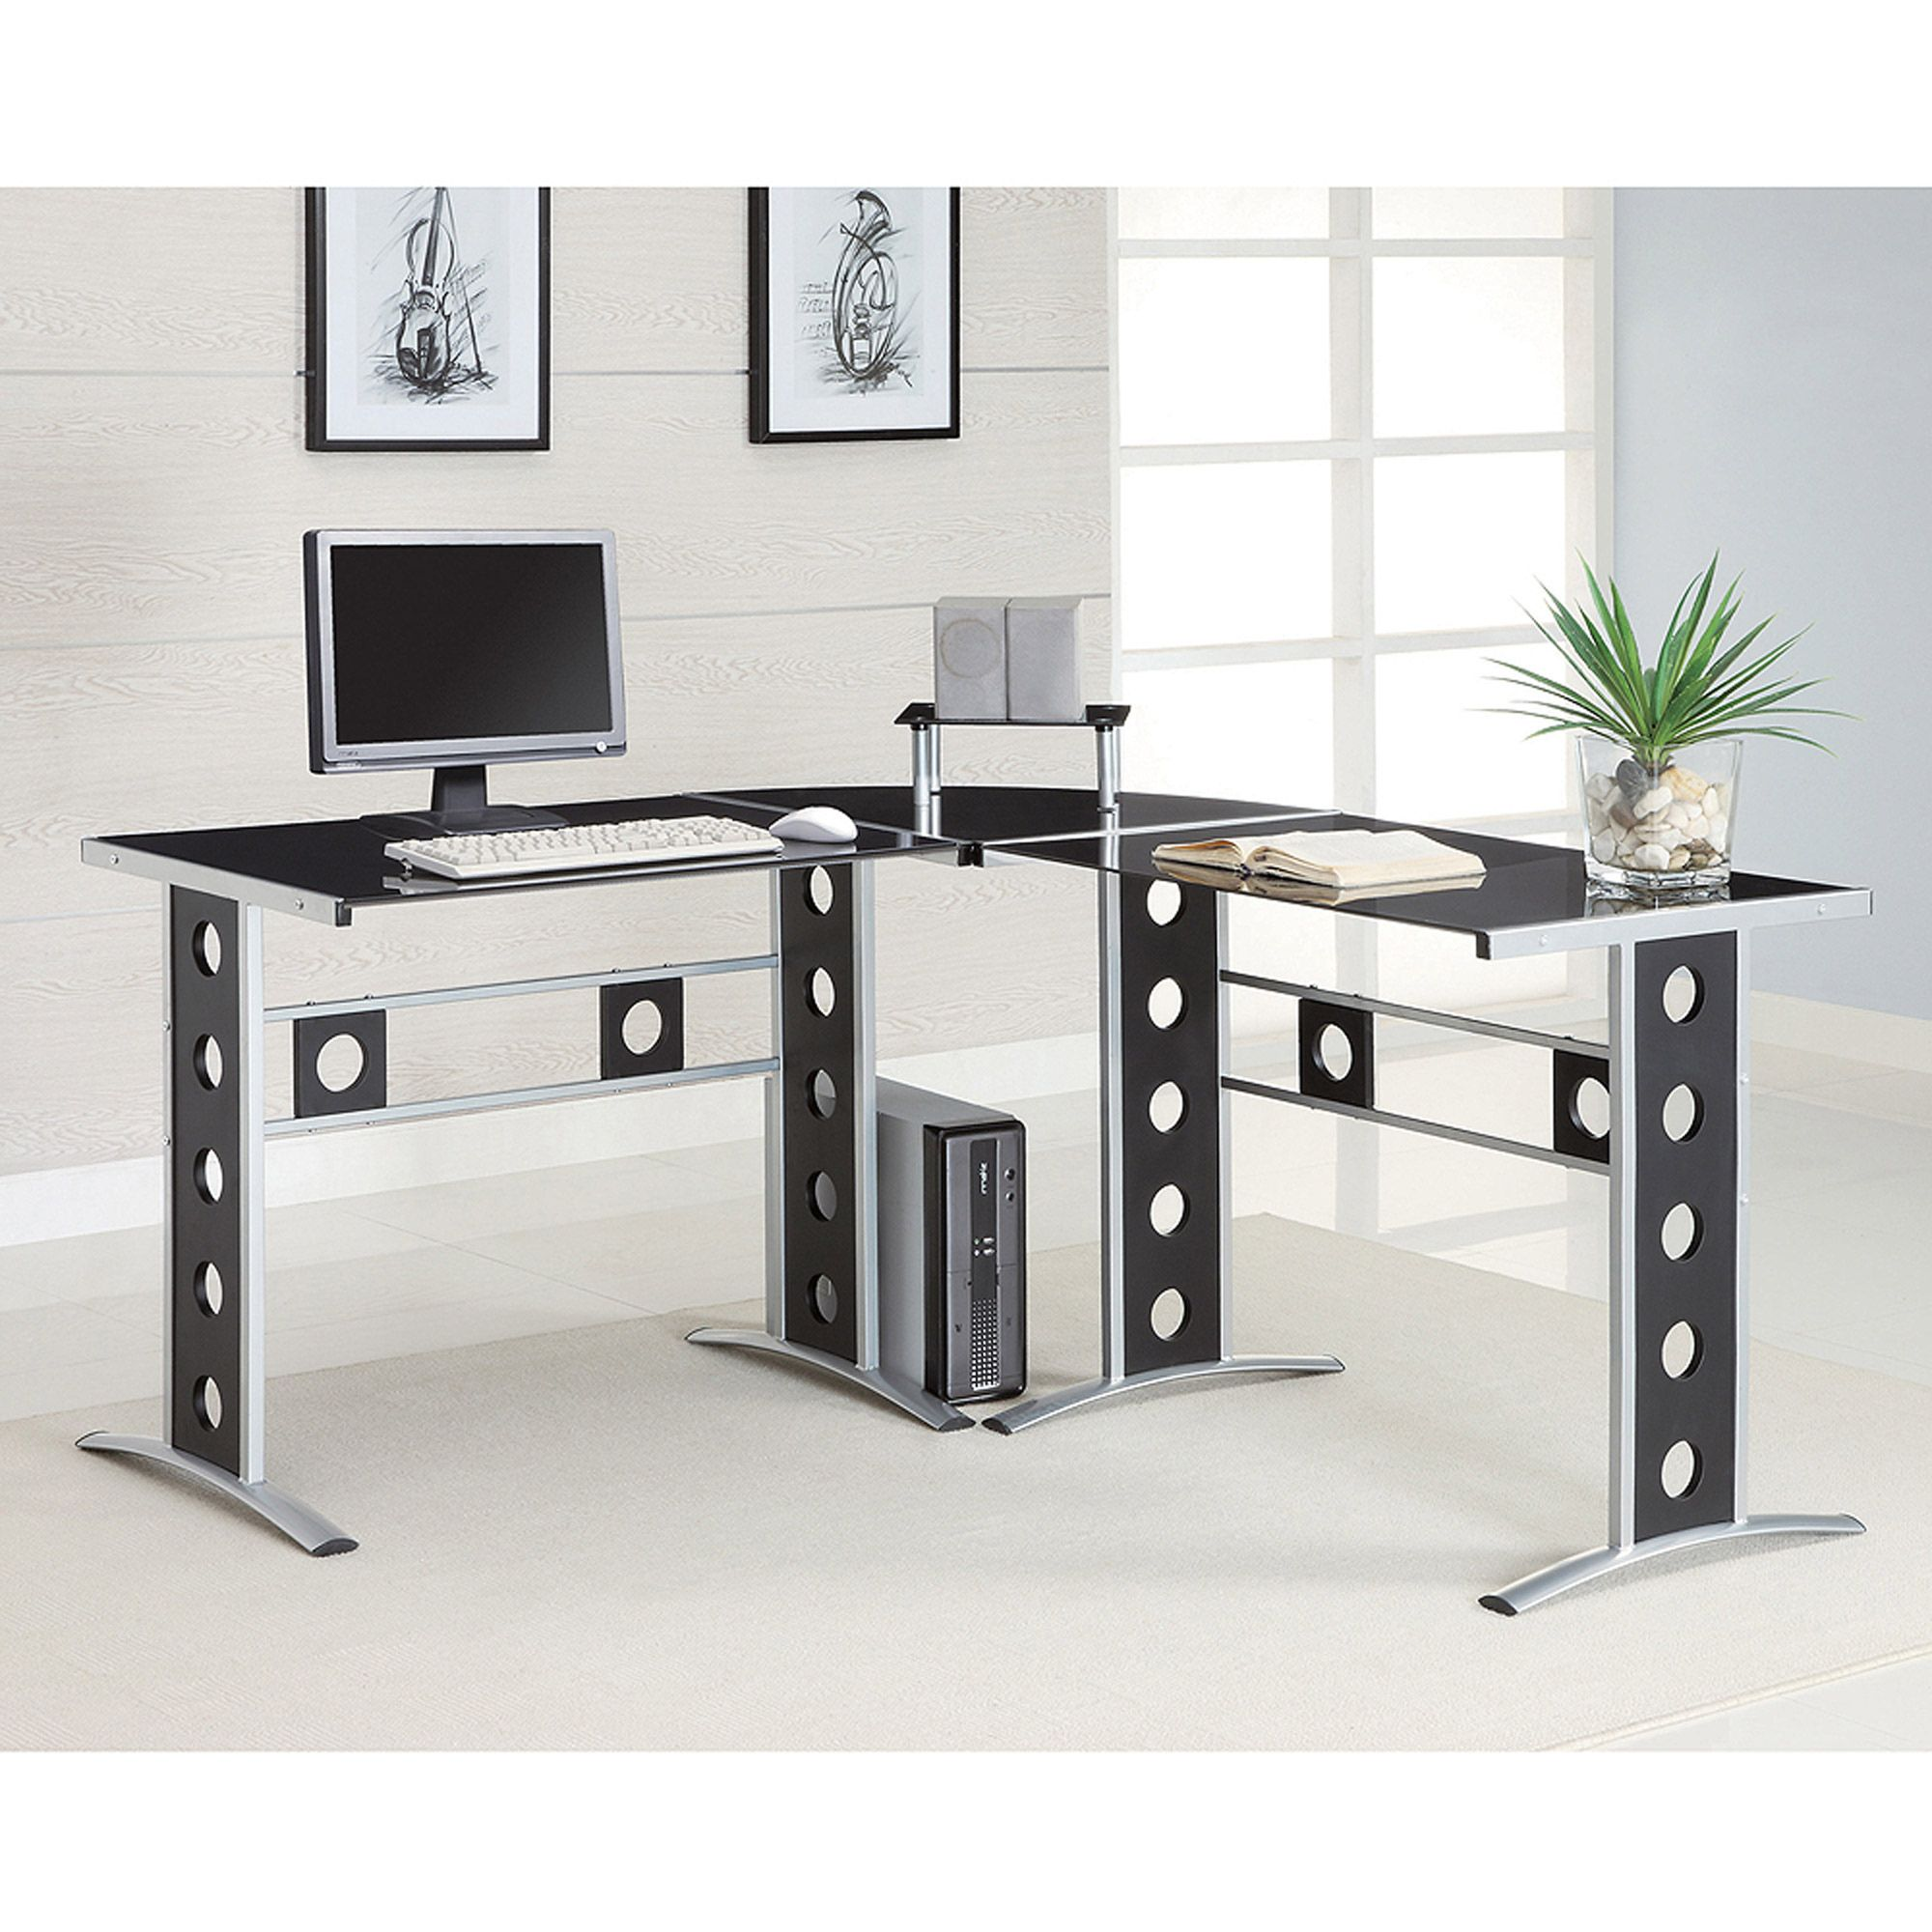 desks facts that about will gaming computer desk awesome mind kneehole blow your on ten for sale